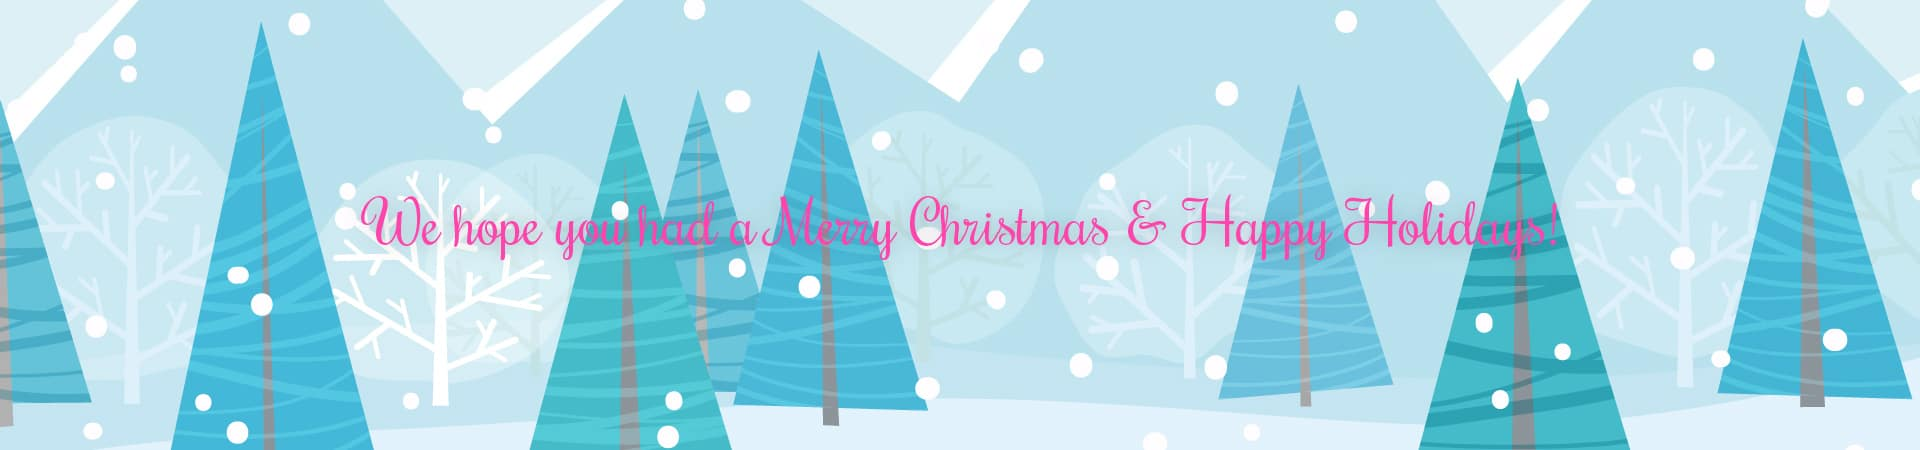 Merry Christmas & Happy Holidays from Autobahn Volvo Fort Worth!